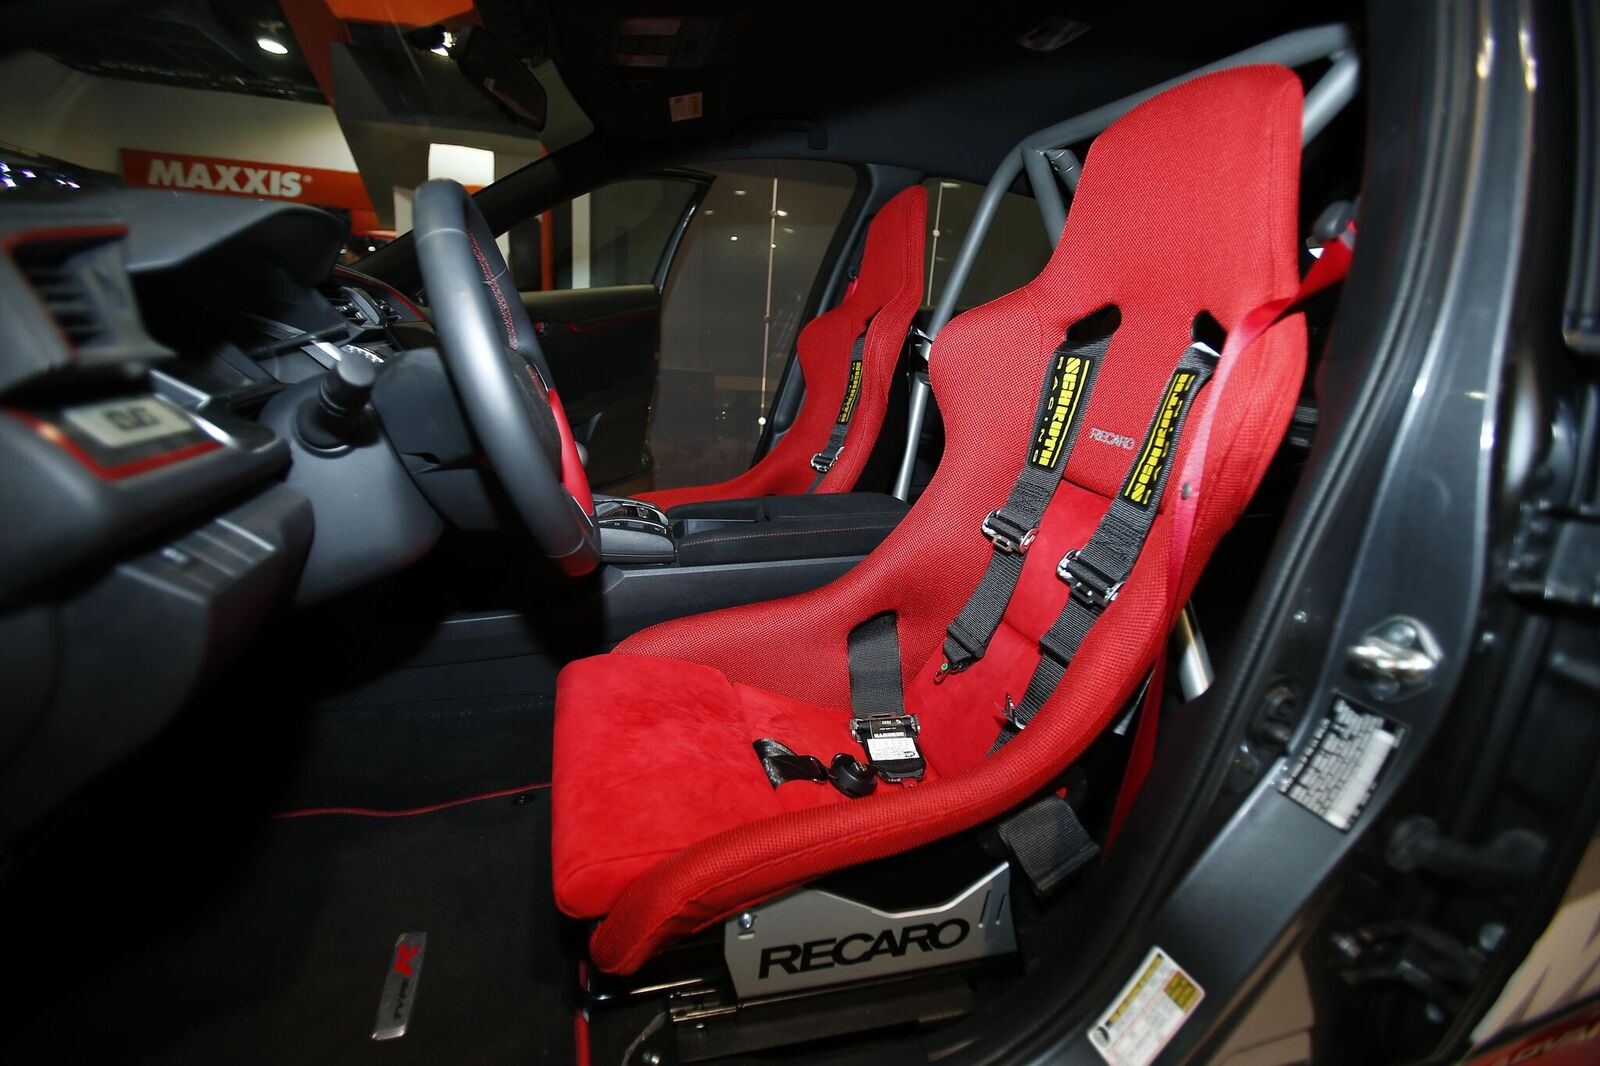 Recaro On Twitter Recaro Pole Position Jersey Red Seats In A 2017 Honda Civic Type R Maxxistires Booth 43099 Recarorally Maps At Booth 50113 Sema2017 Https T Co Br7ybalipg